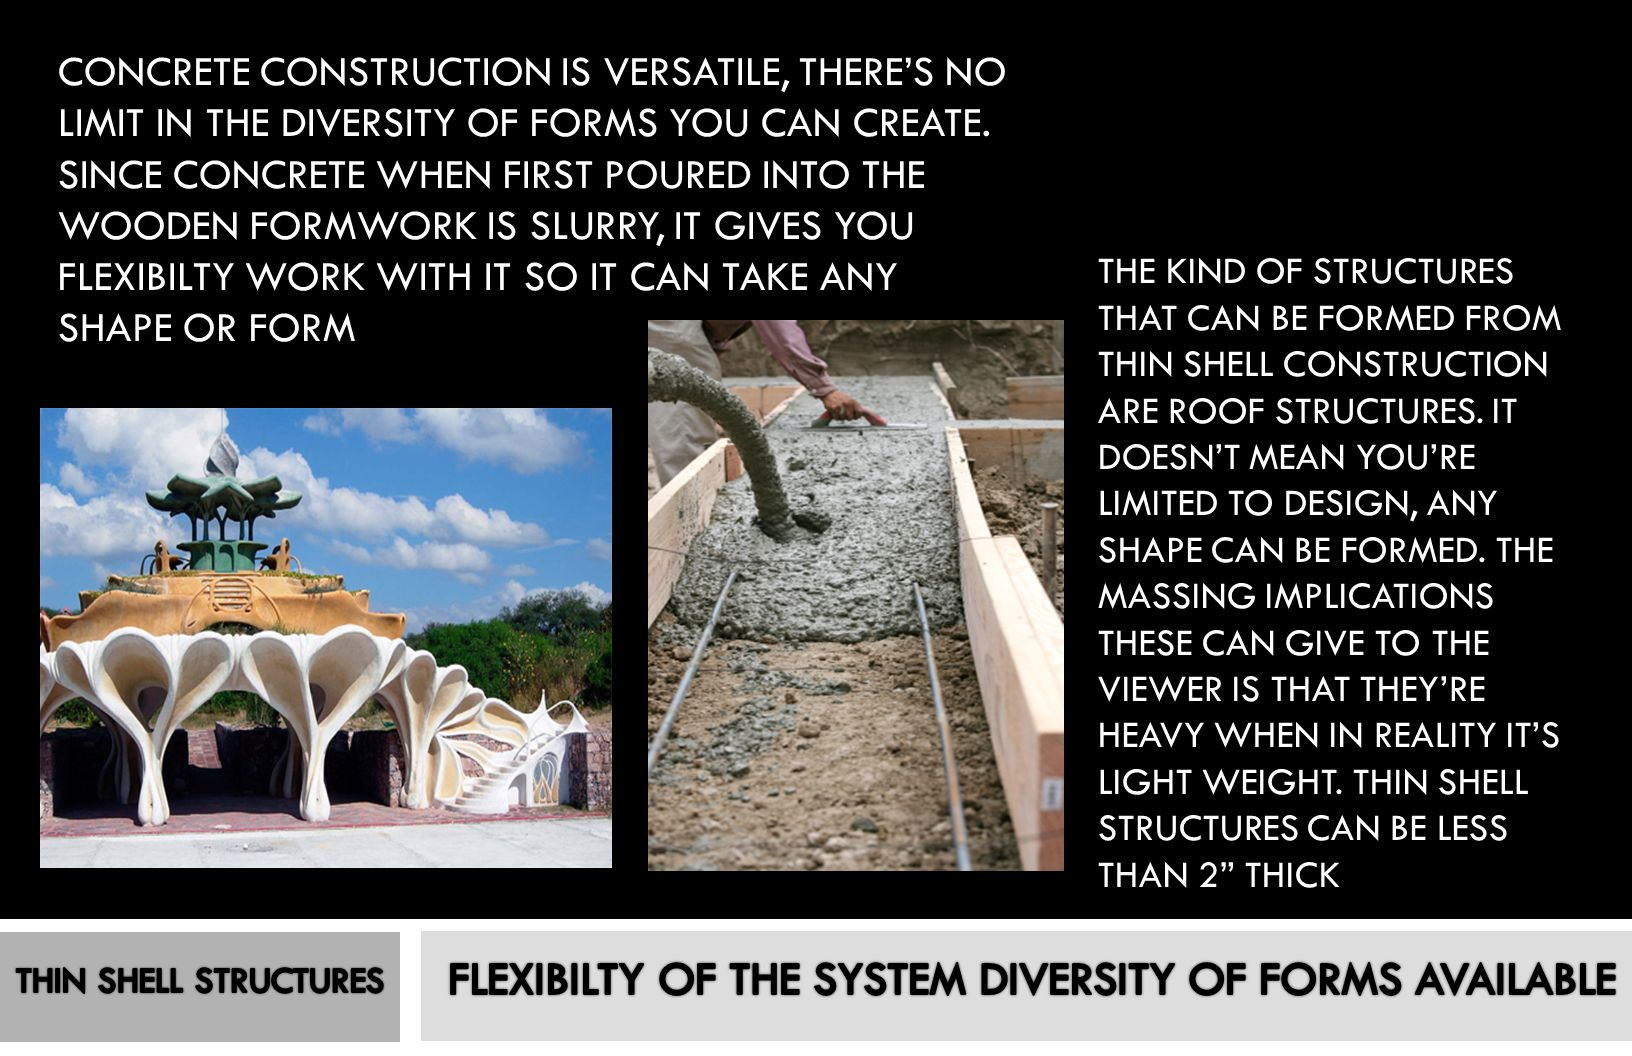 FLEXIBILTY OF THE SYSTEM DIVERSITY OF FORMS AVAILABLE